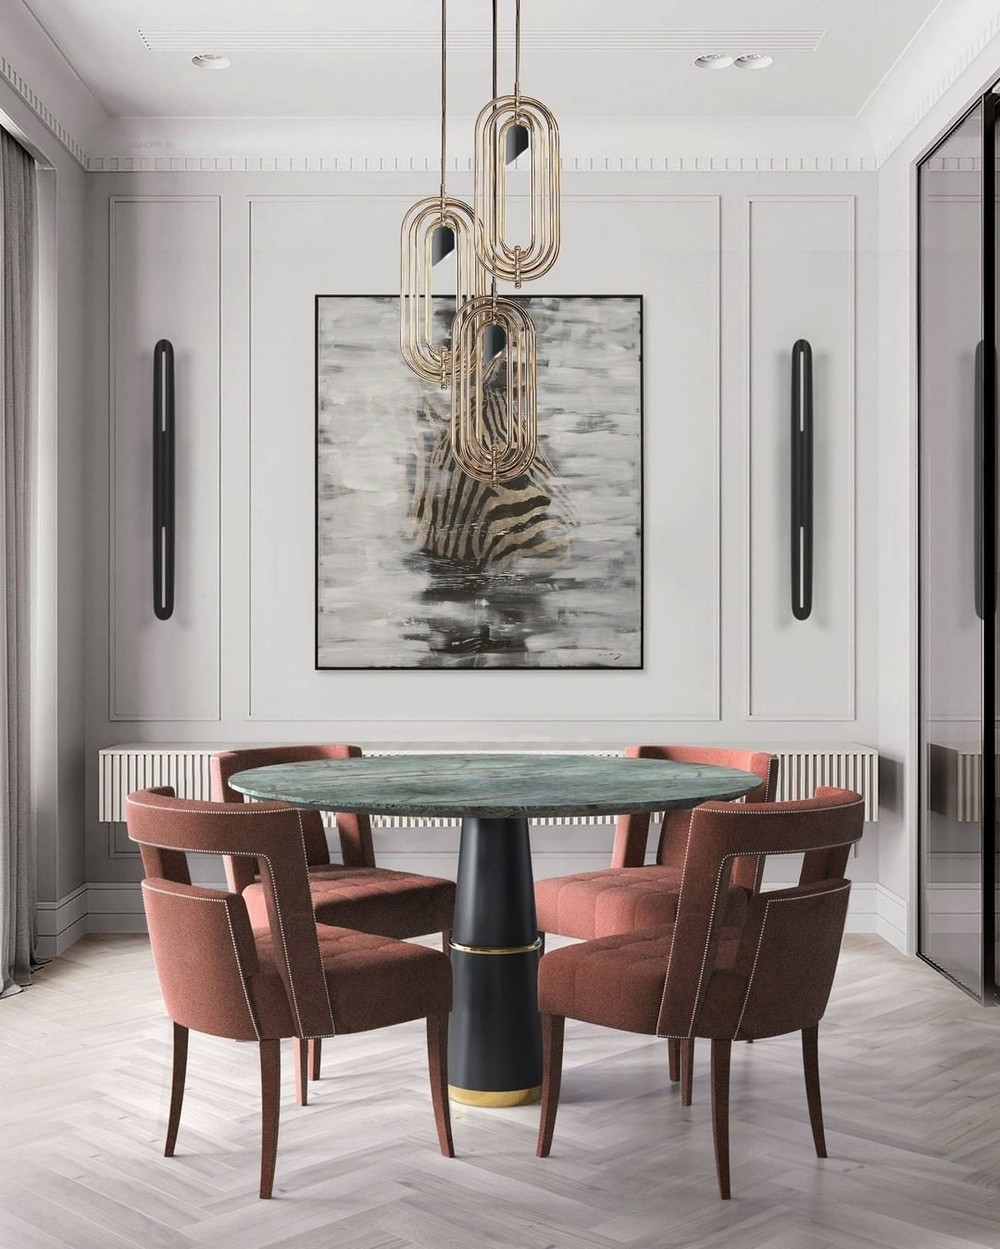 luxury dining rooms Searching For Inspiration? Here Are Our Favorite Luxury Dining Rooms 11